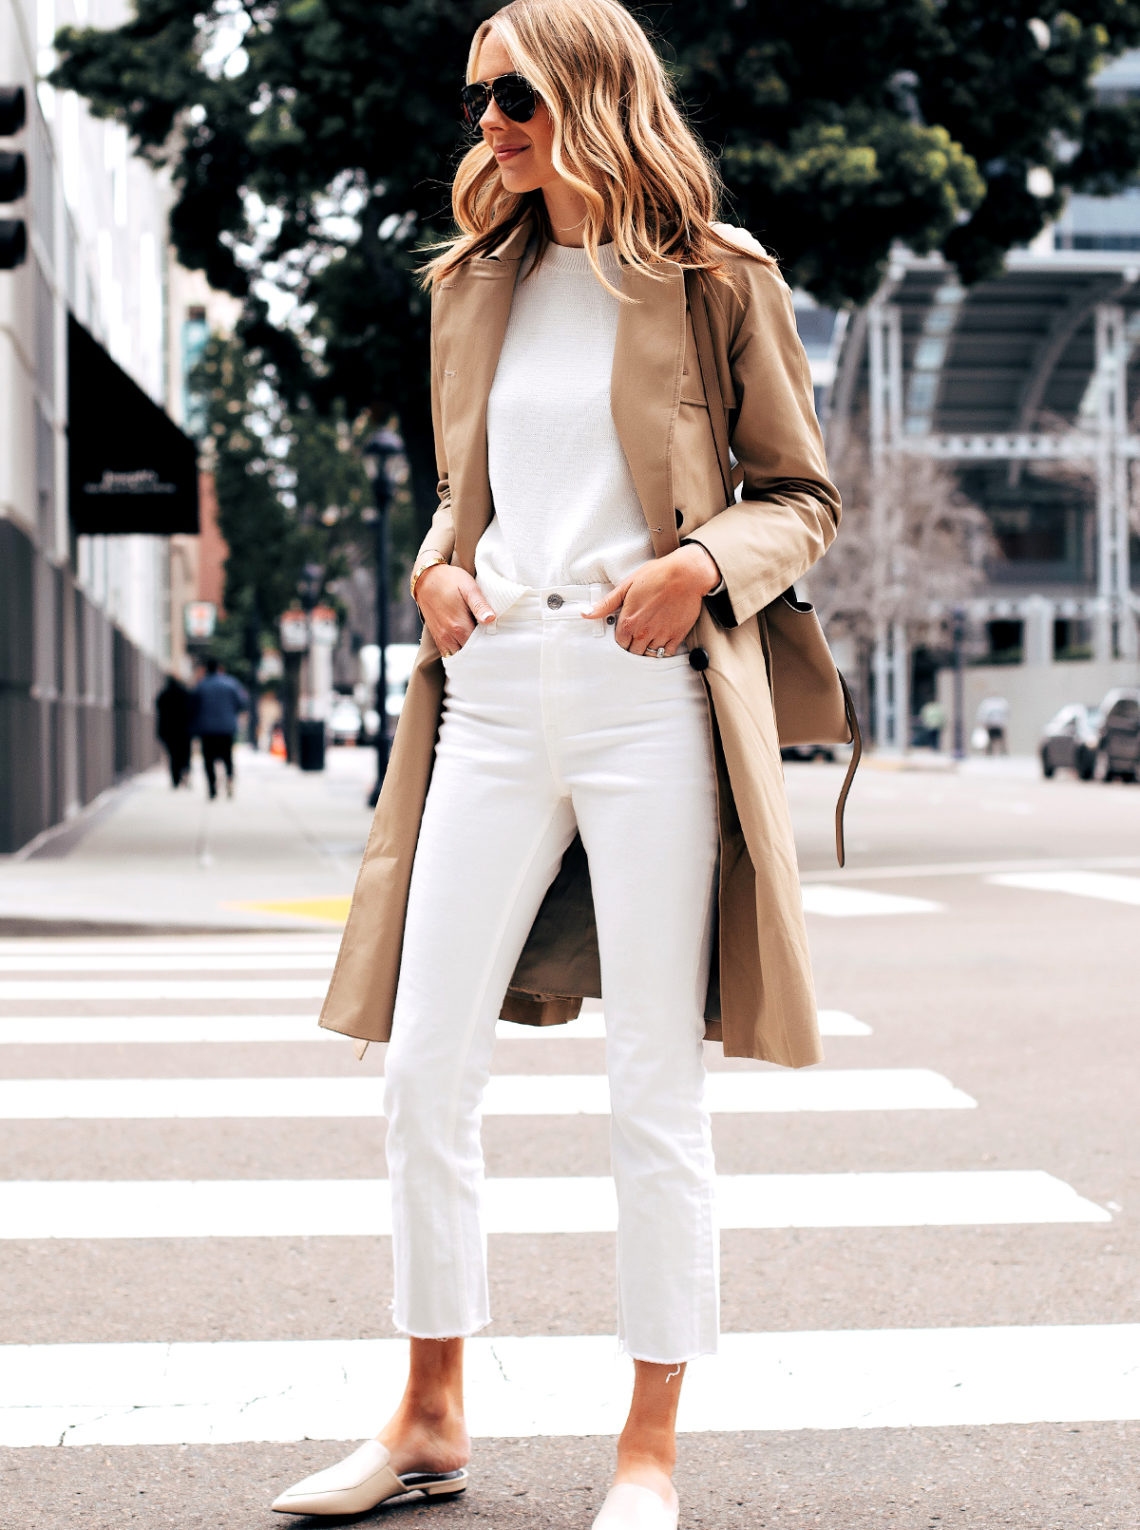 Fashion Jackson Capsule Wardrobe Wearing Everlane Trench Coat White Sweater Everlane White Crop Jeans Everlane White Mules